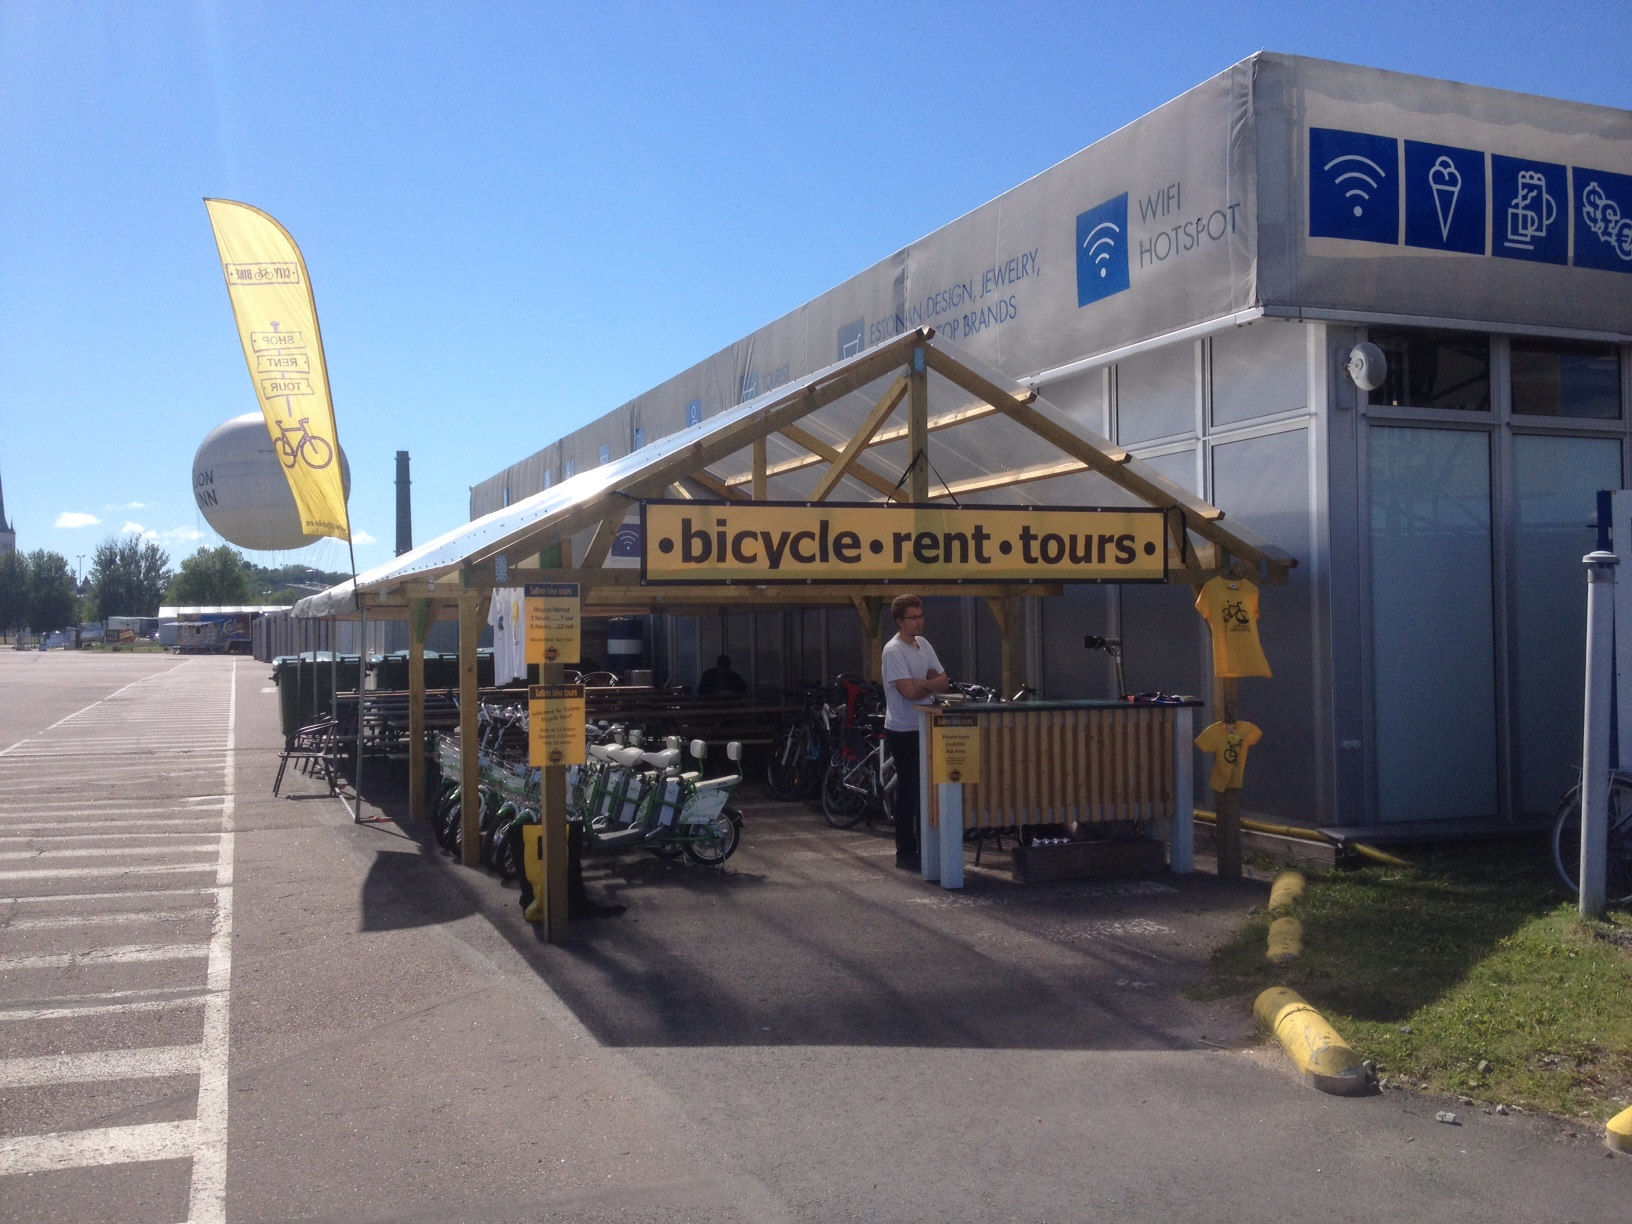 Tallinn Cruise port bicycle rental and tours office